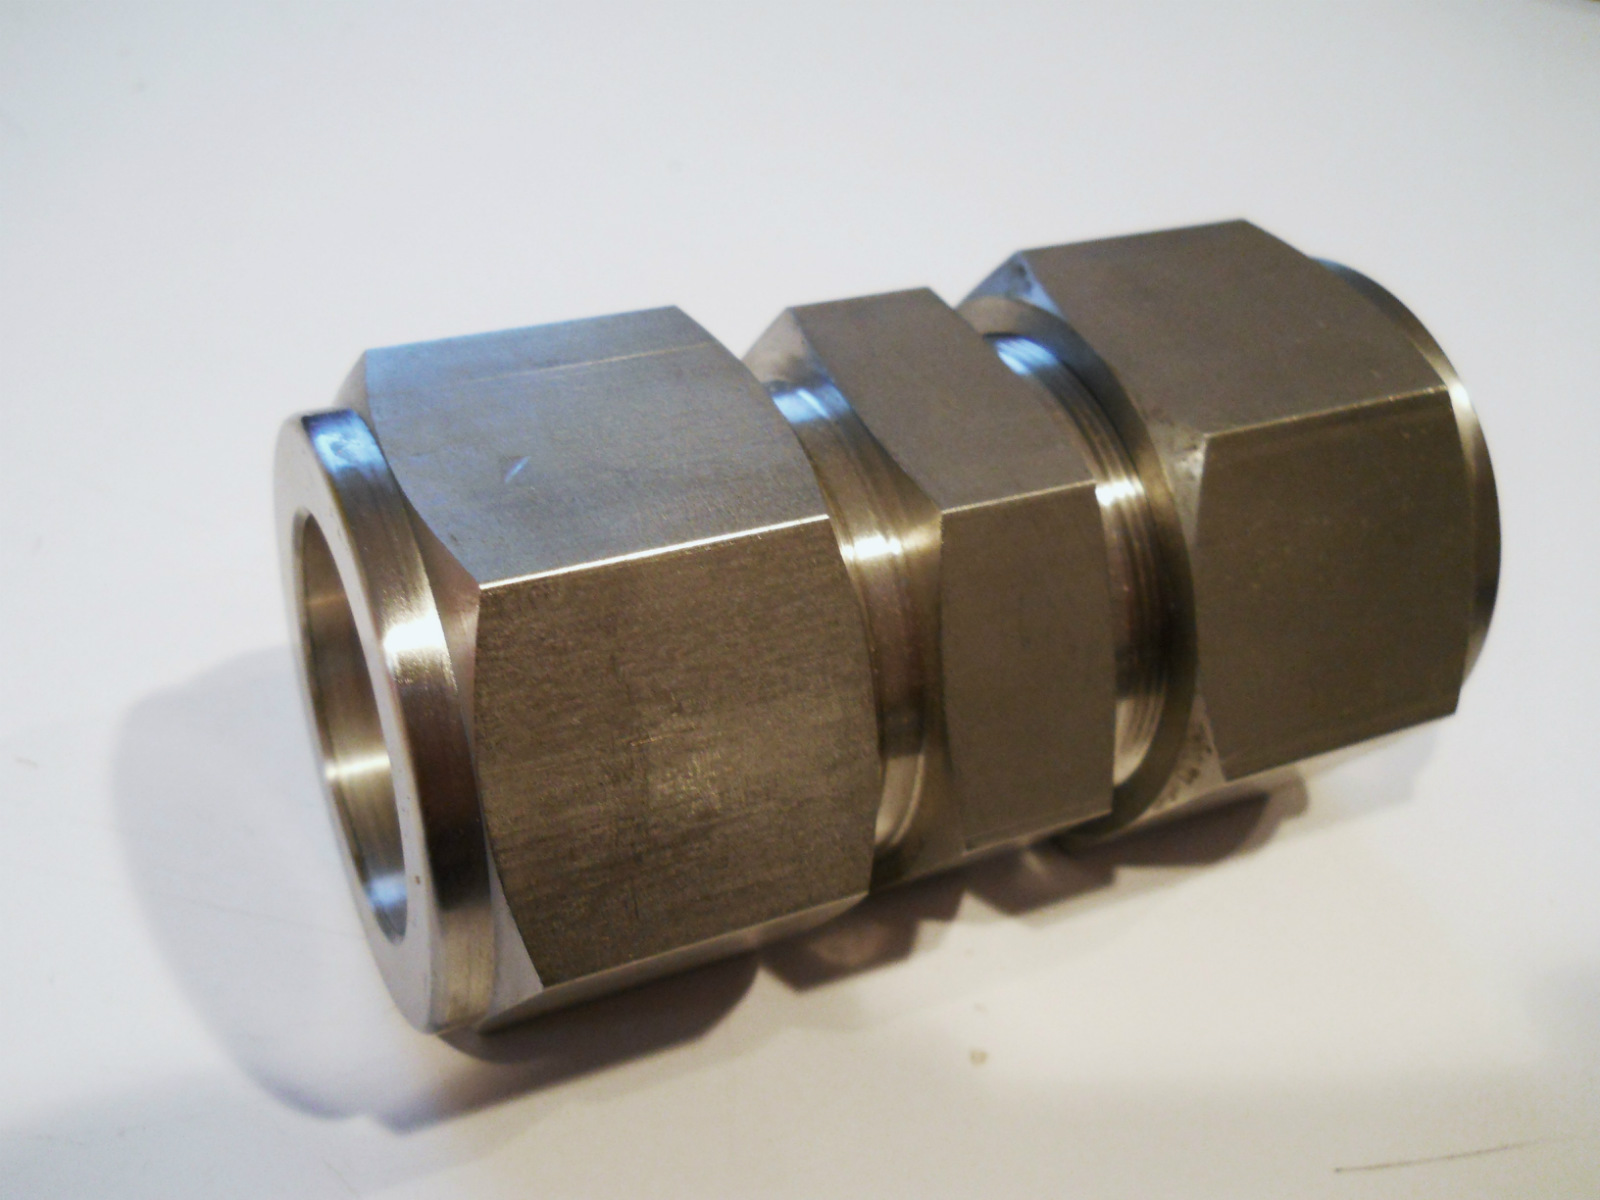 New 1 2 Swagelok Stainless Union Tube Coupling